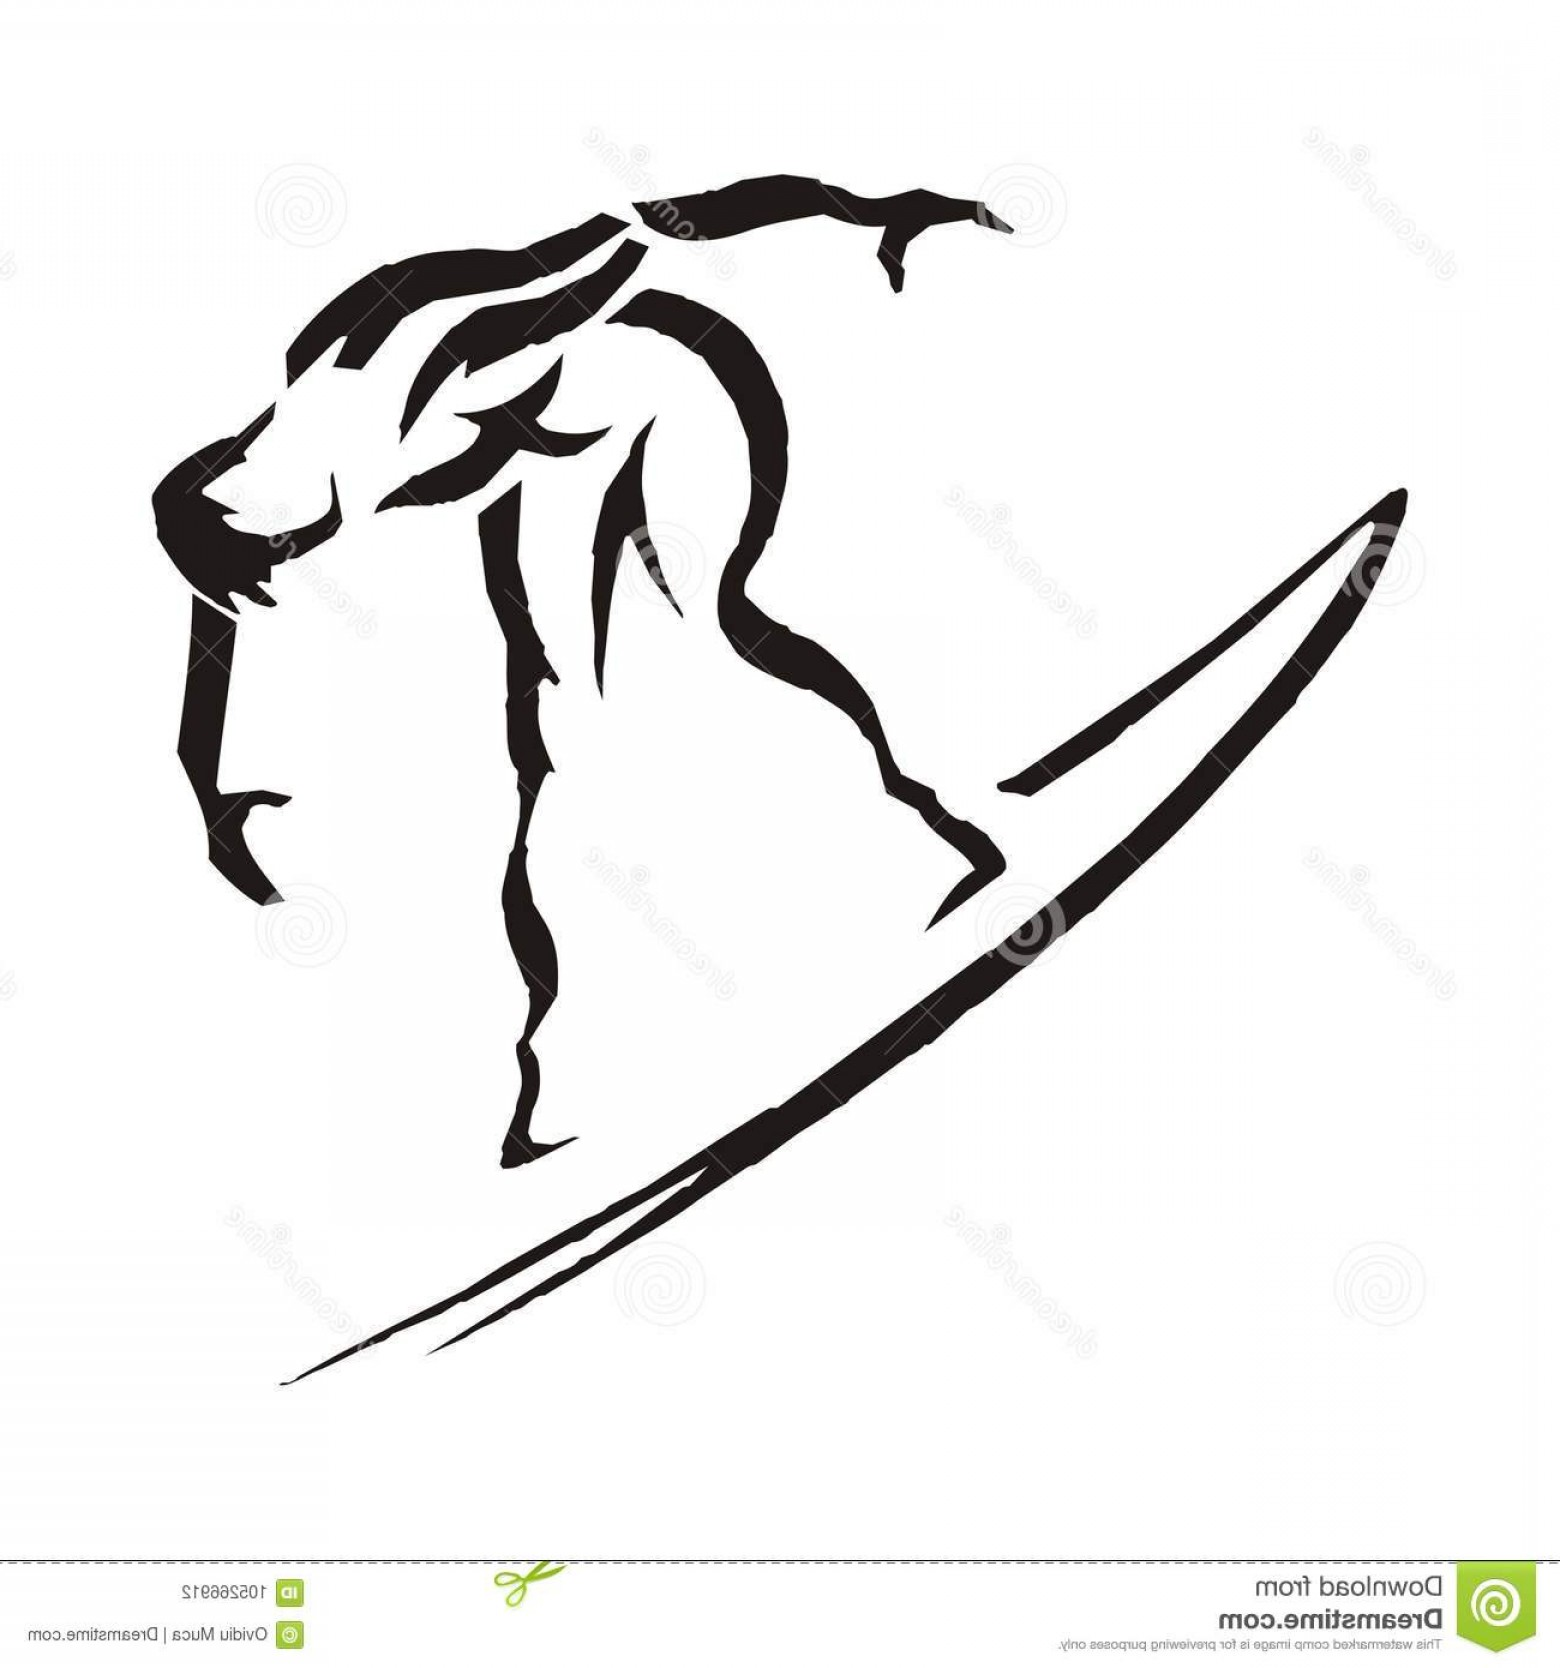 Surfboard Vector Drawing: Surfer Vector Art Silhouette Board Design Draw Graphic Surfboard Recreation Sketch Sport Sportman Lifestyle Leisure Summer Man Image